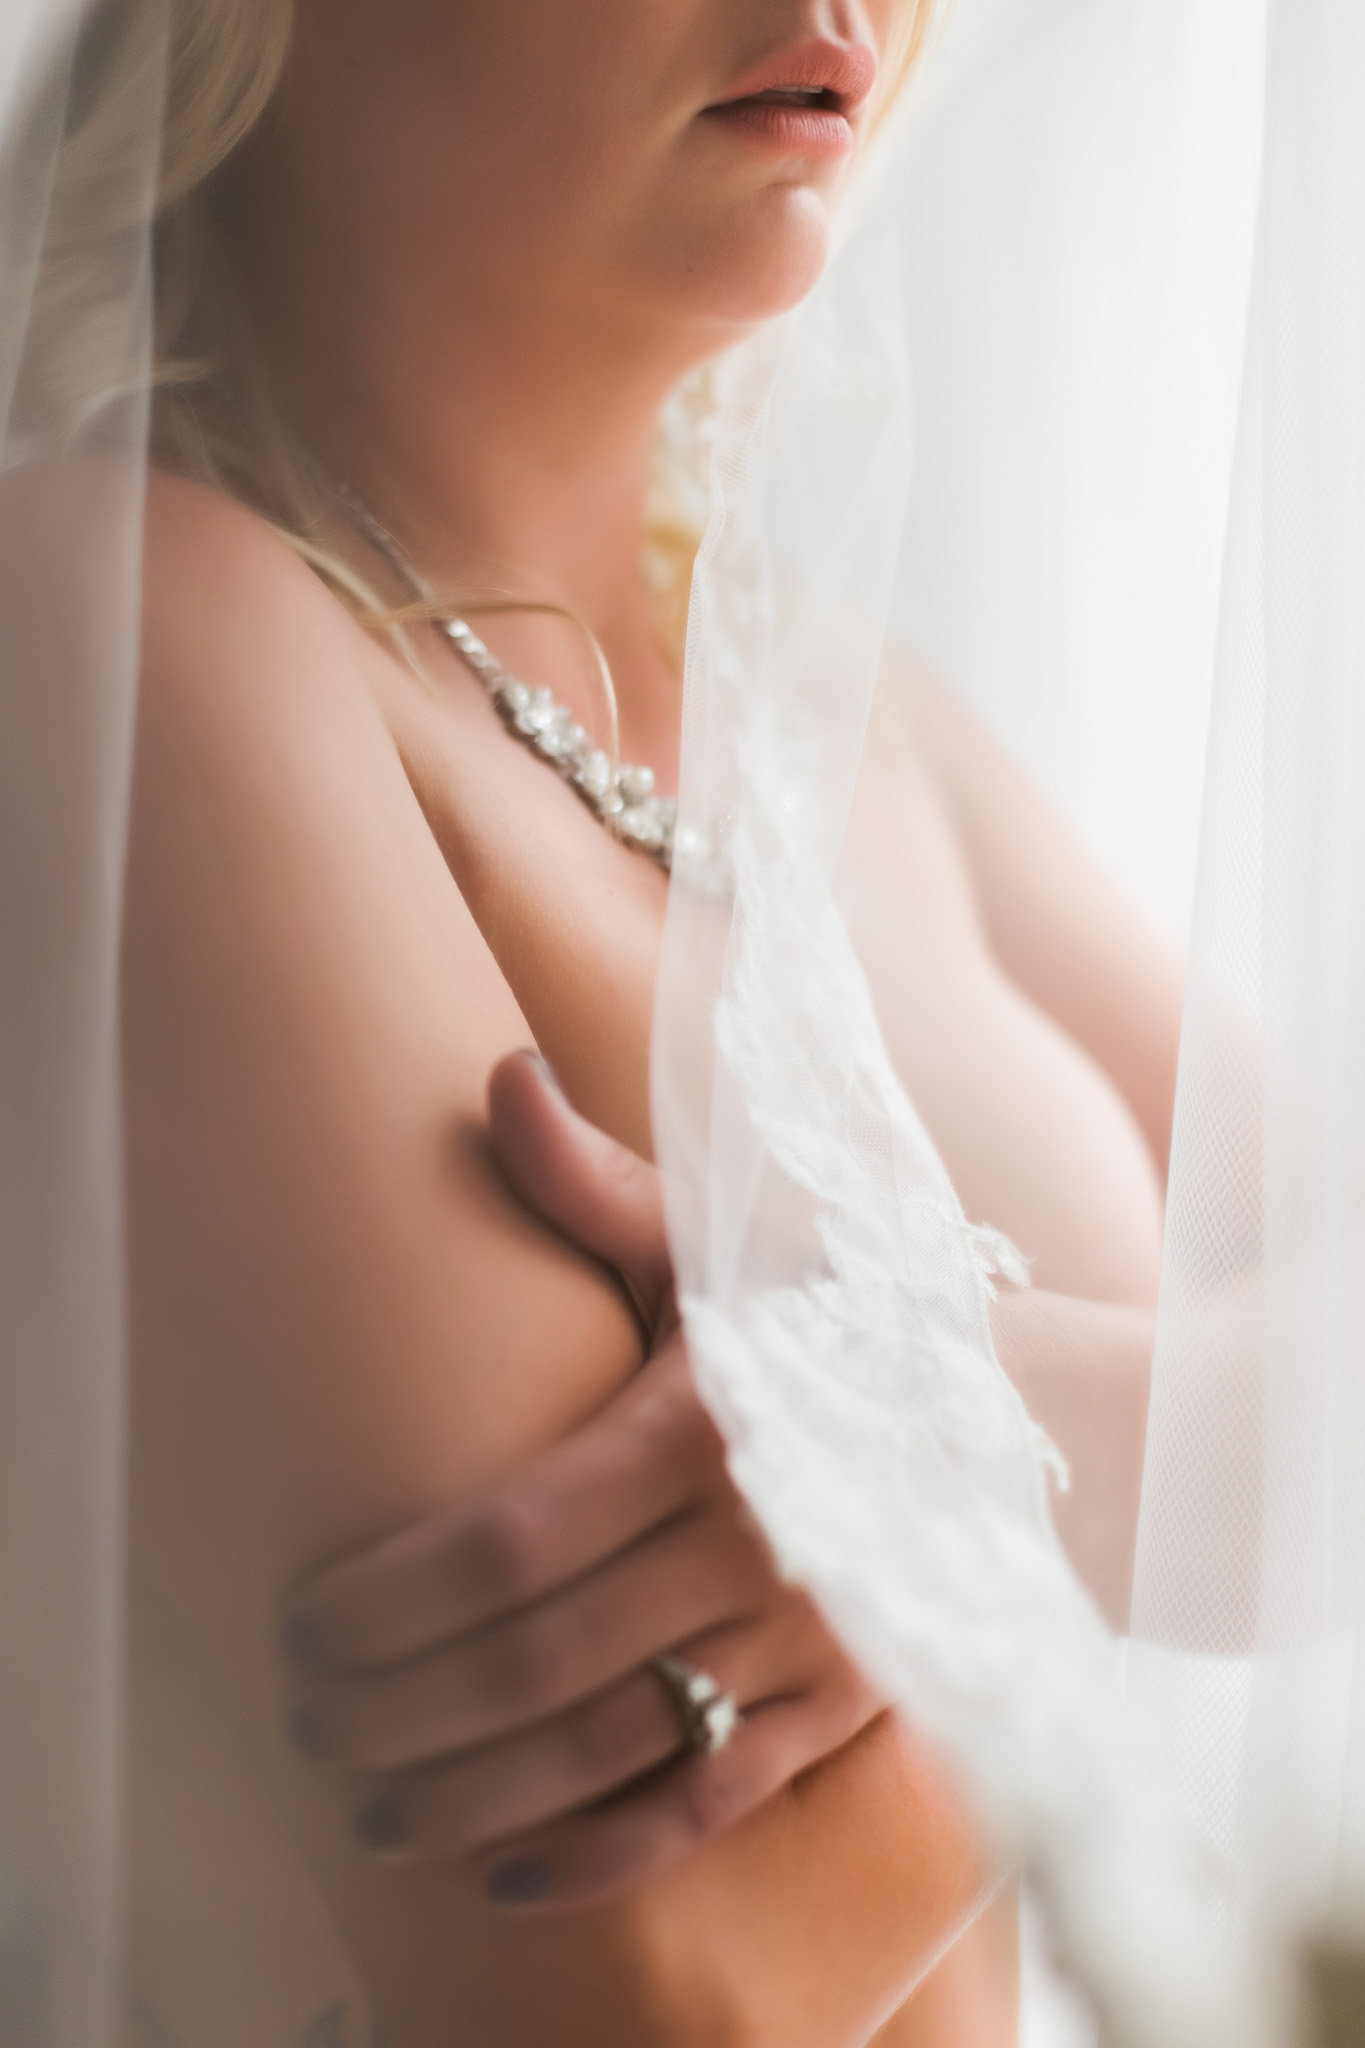 Romantic bridal boudoir photo of a bride wearing her veil